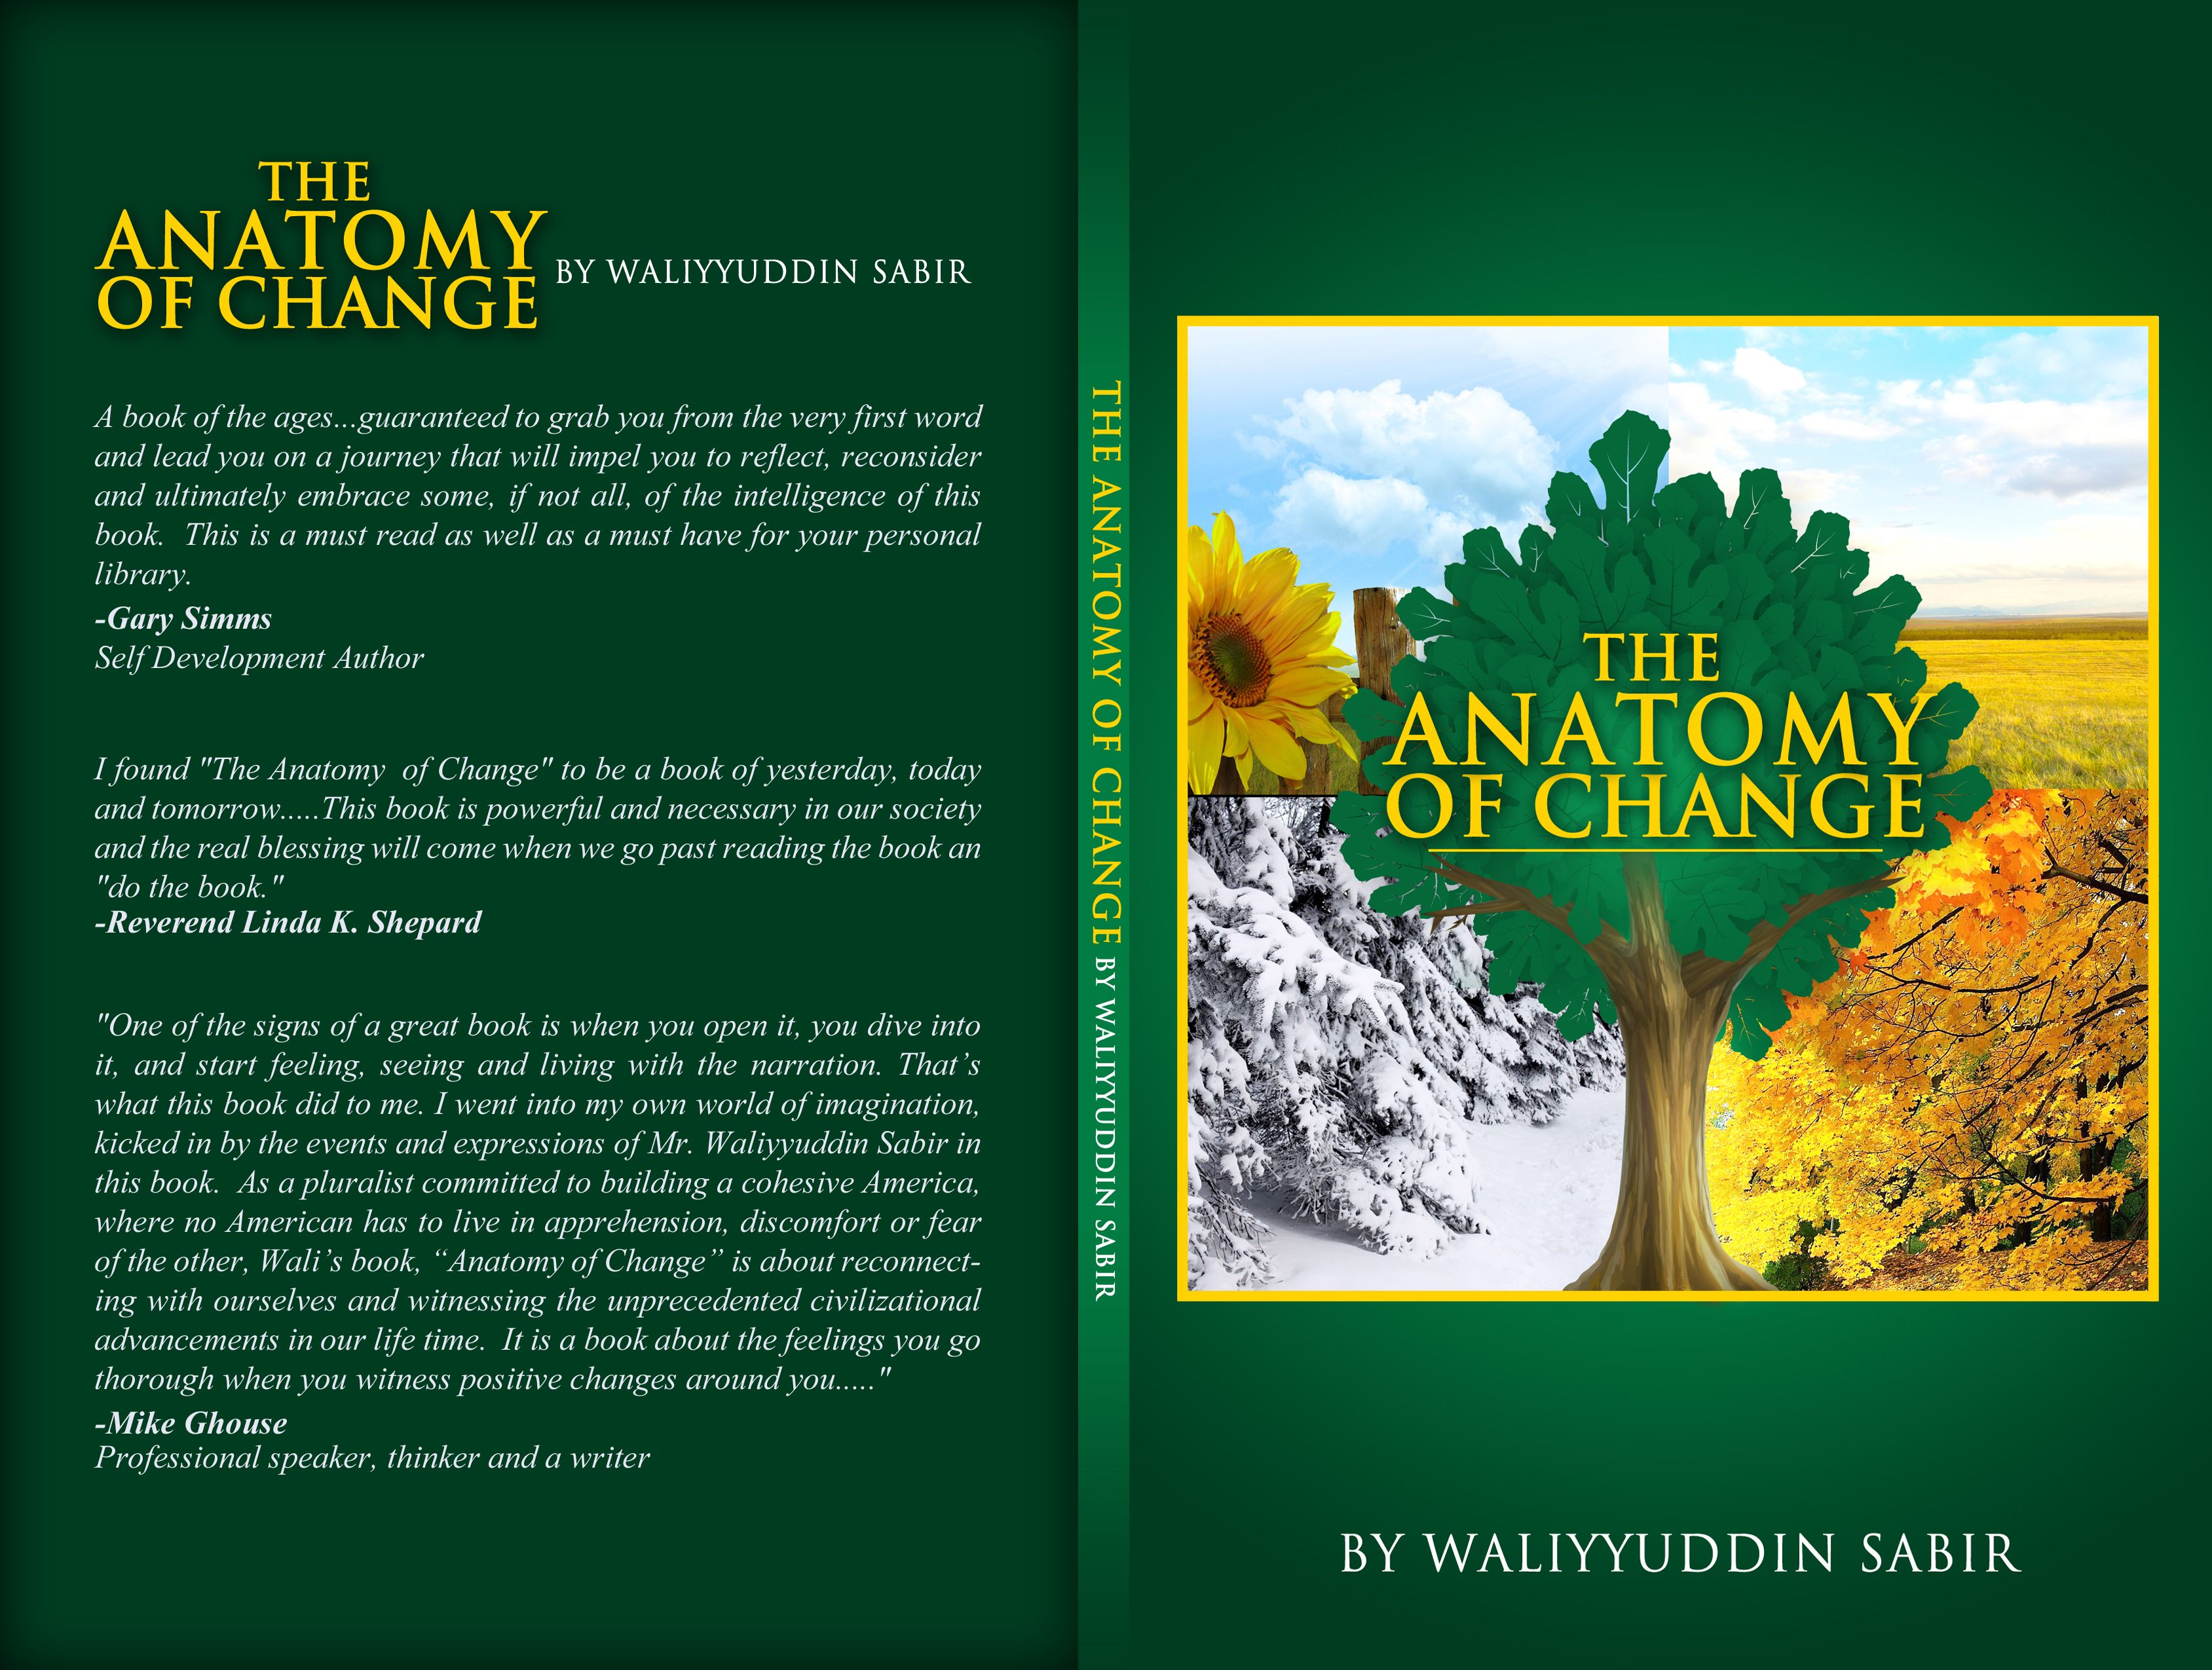 book cover design the anatomy of change book cover design - Book Cover Design Ideas